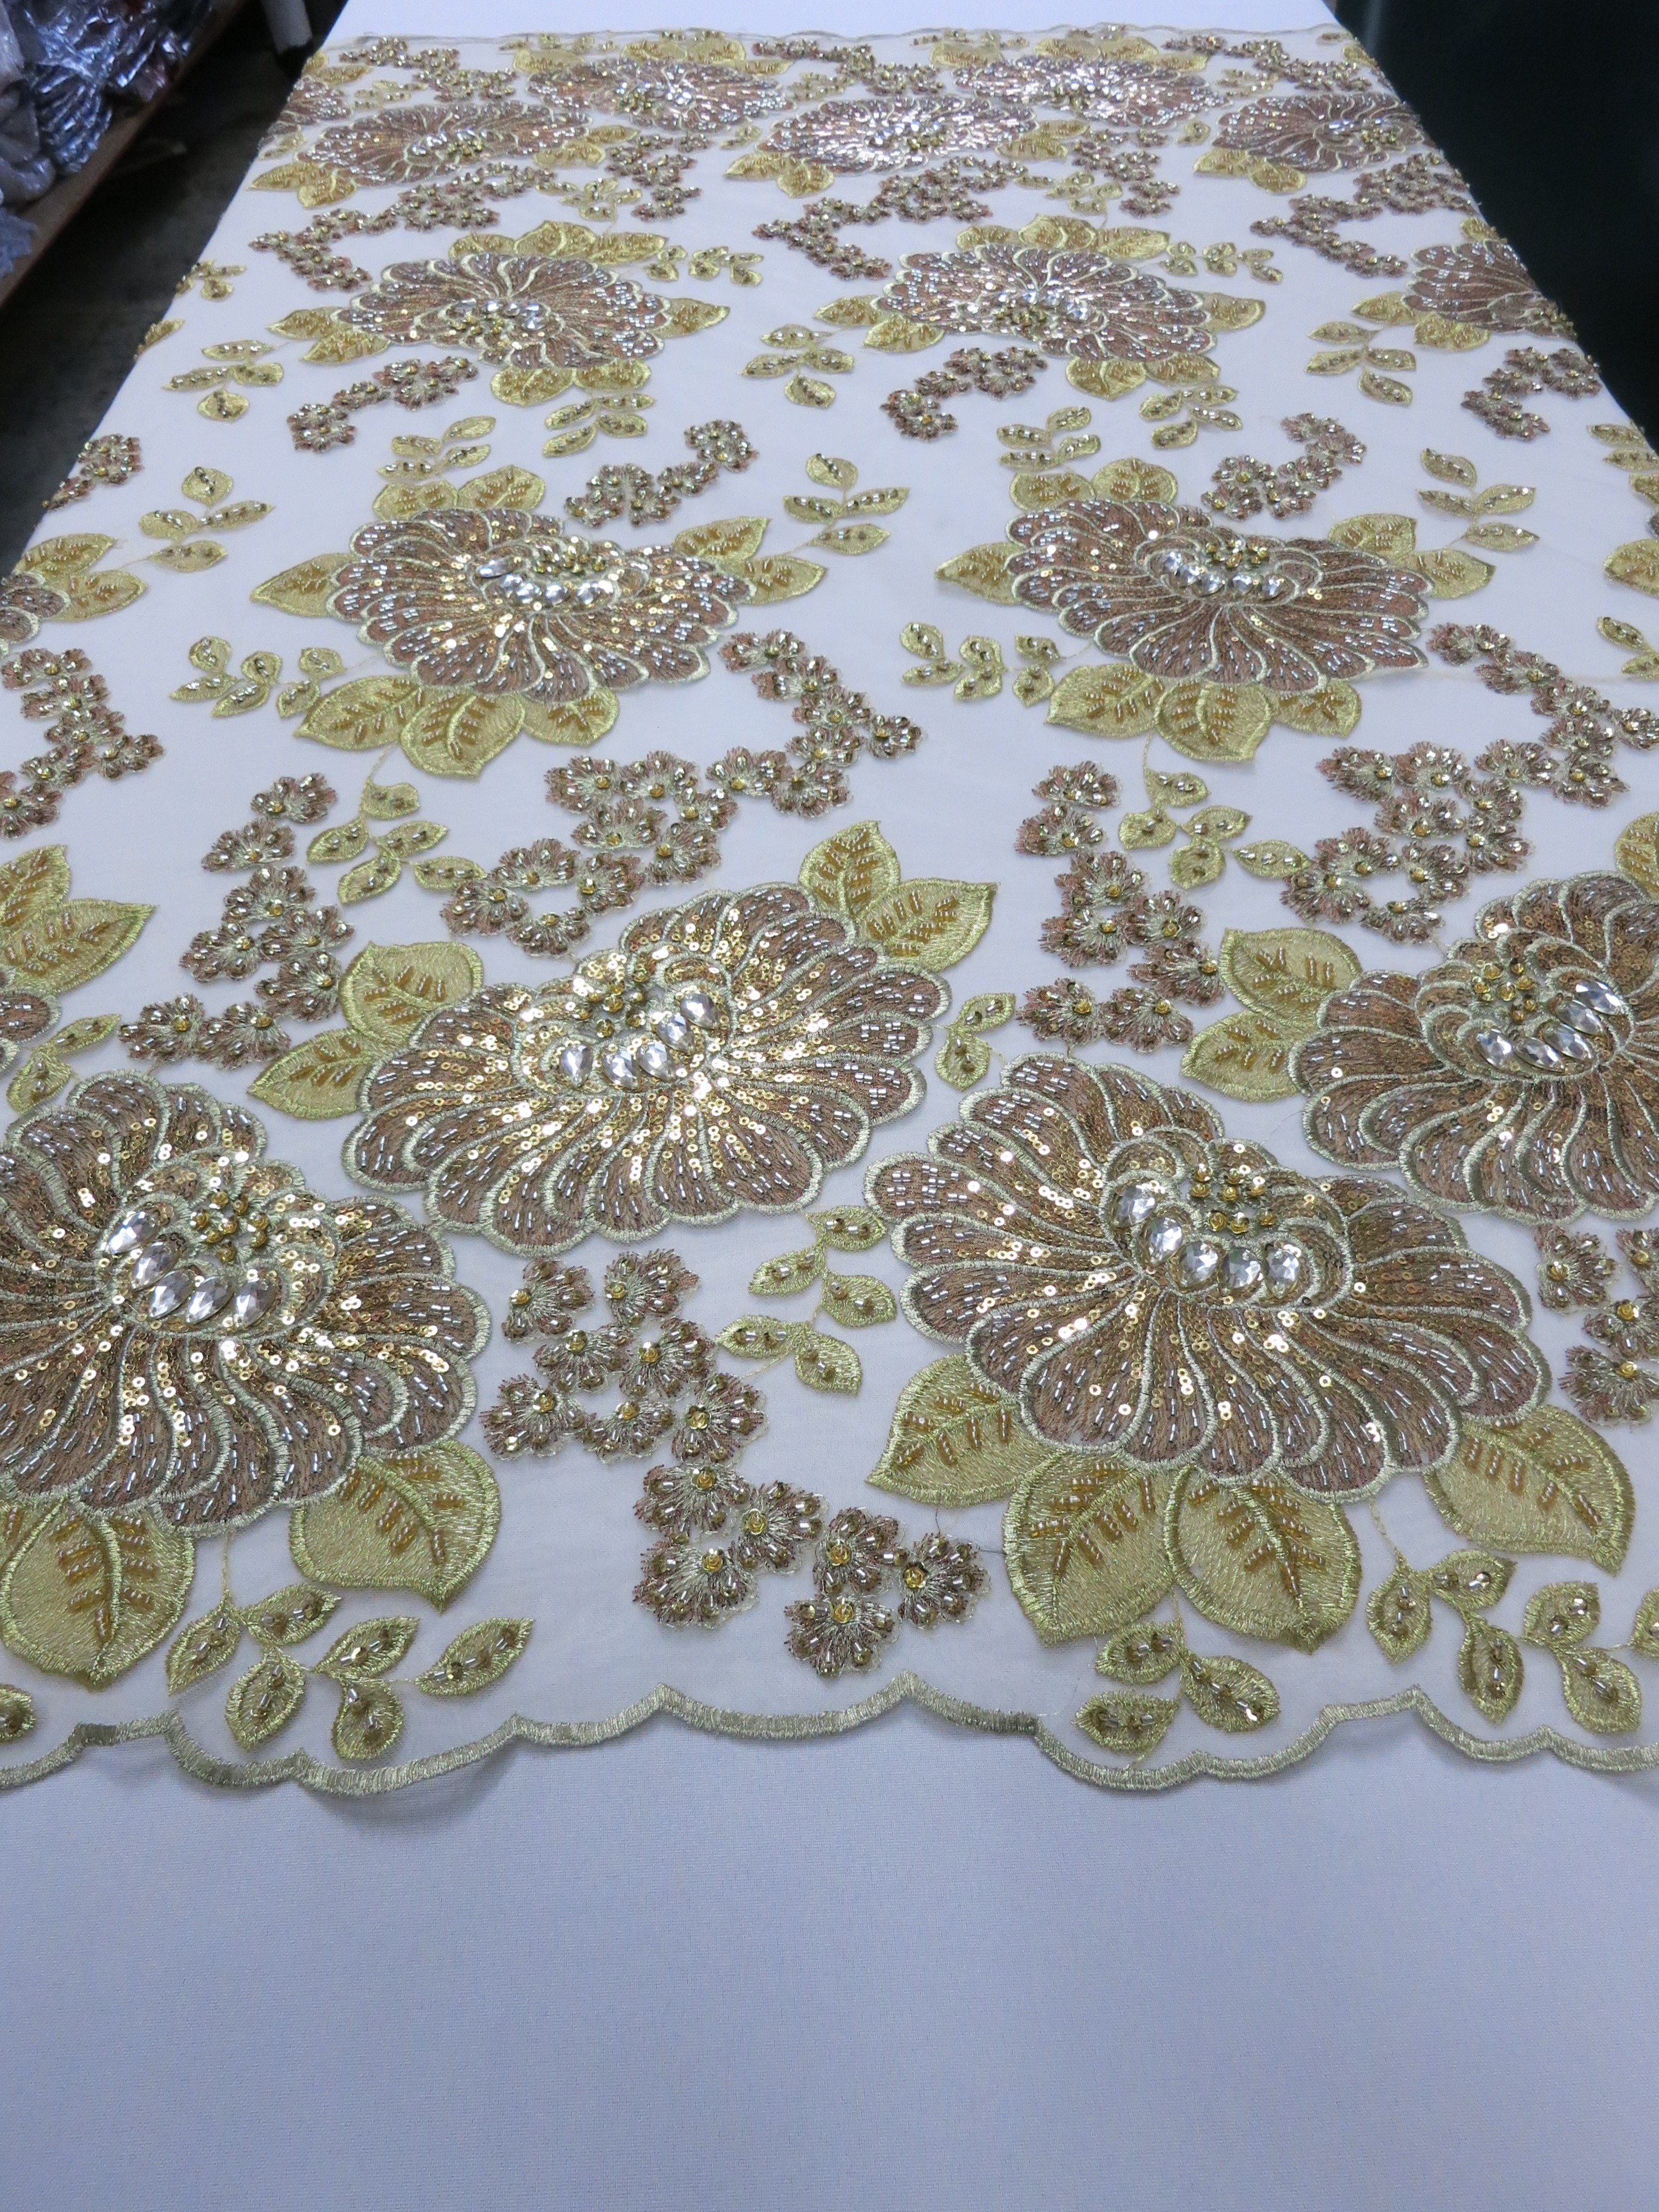 Gold Embroidered Beaded Lace Fabric